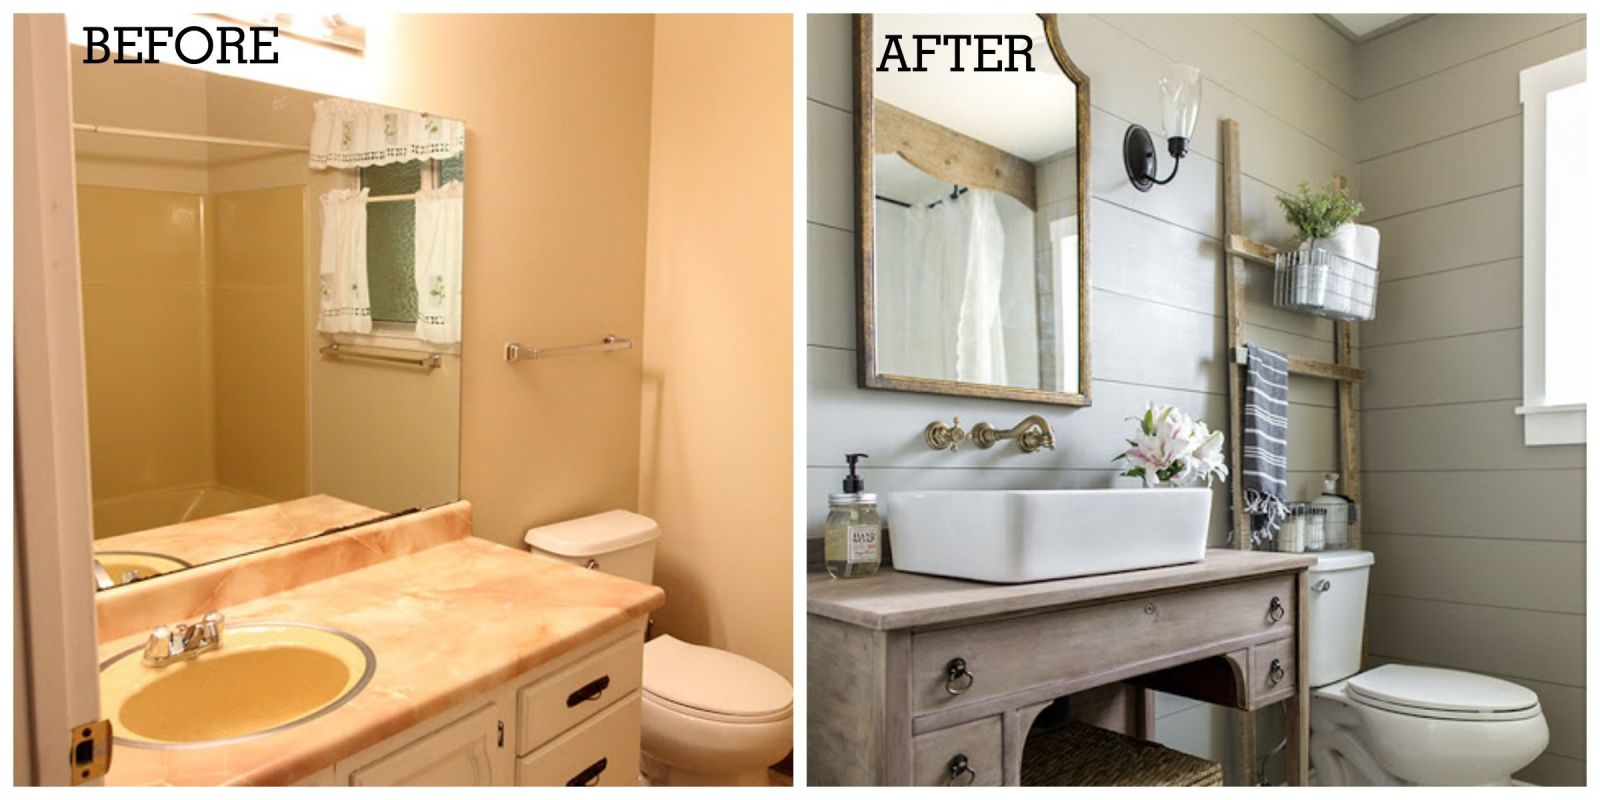 One of the most beautiful diy bathroom renovations ever for Most popular bathroom renovations